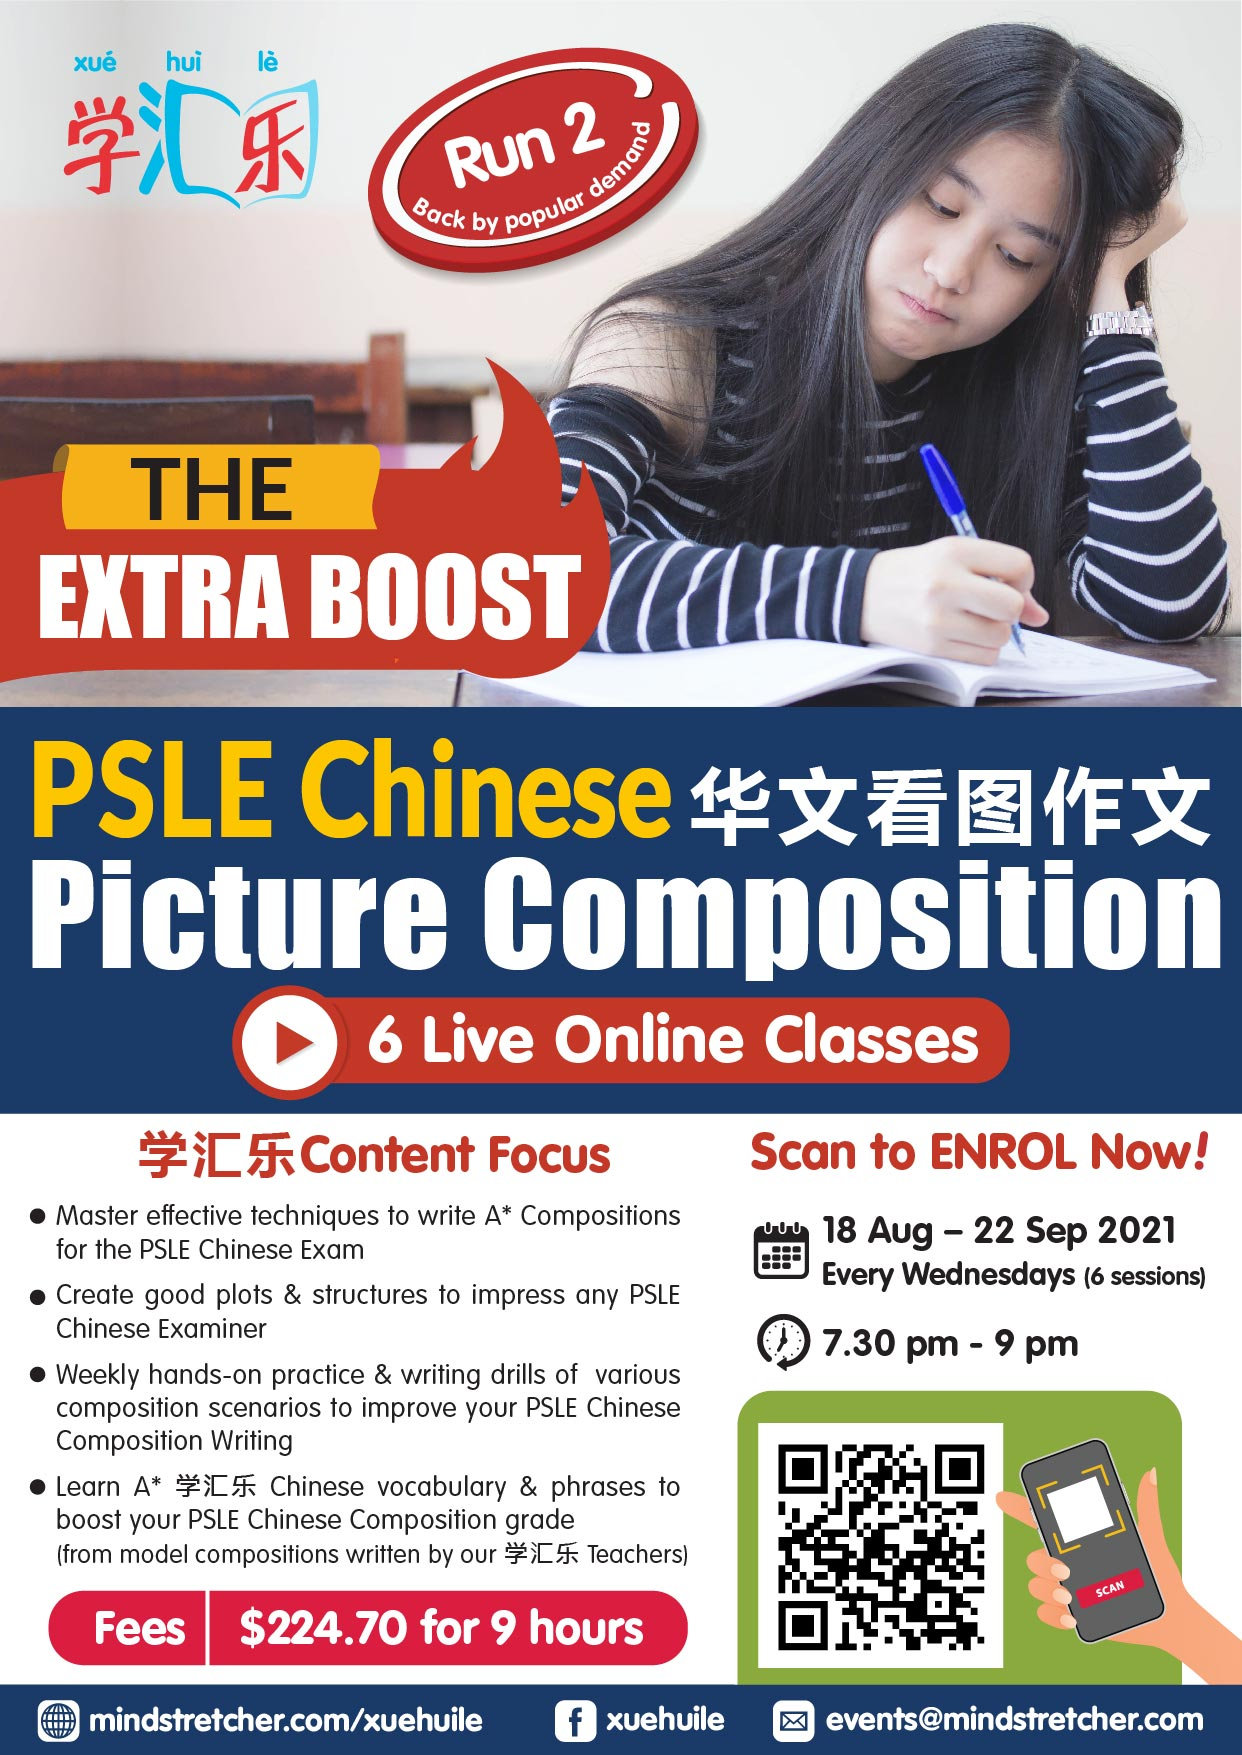 PSLE Chinese Picture Composition_The Extra Boost_R2 _Mind Stretcher